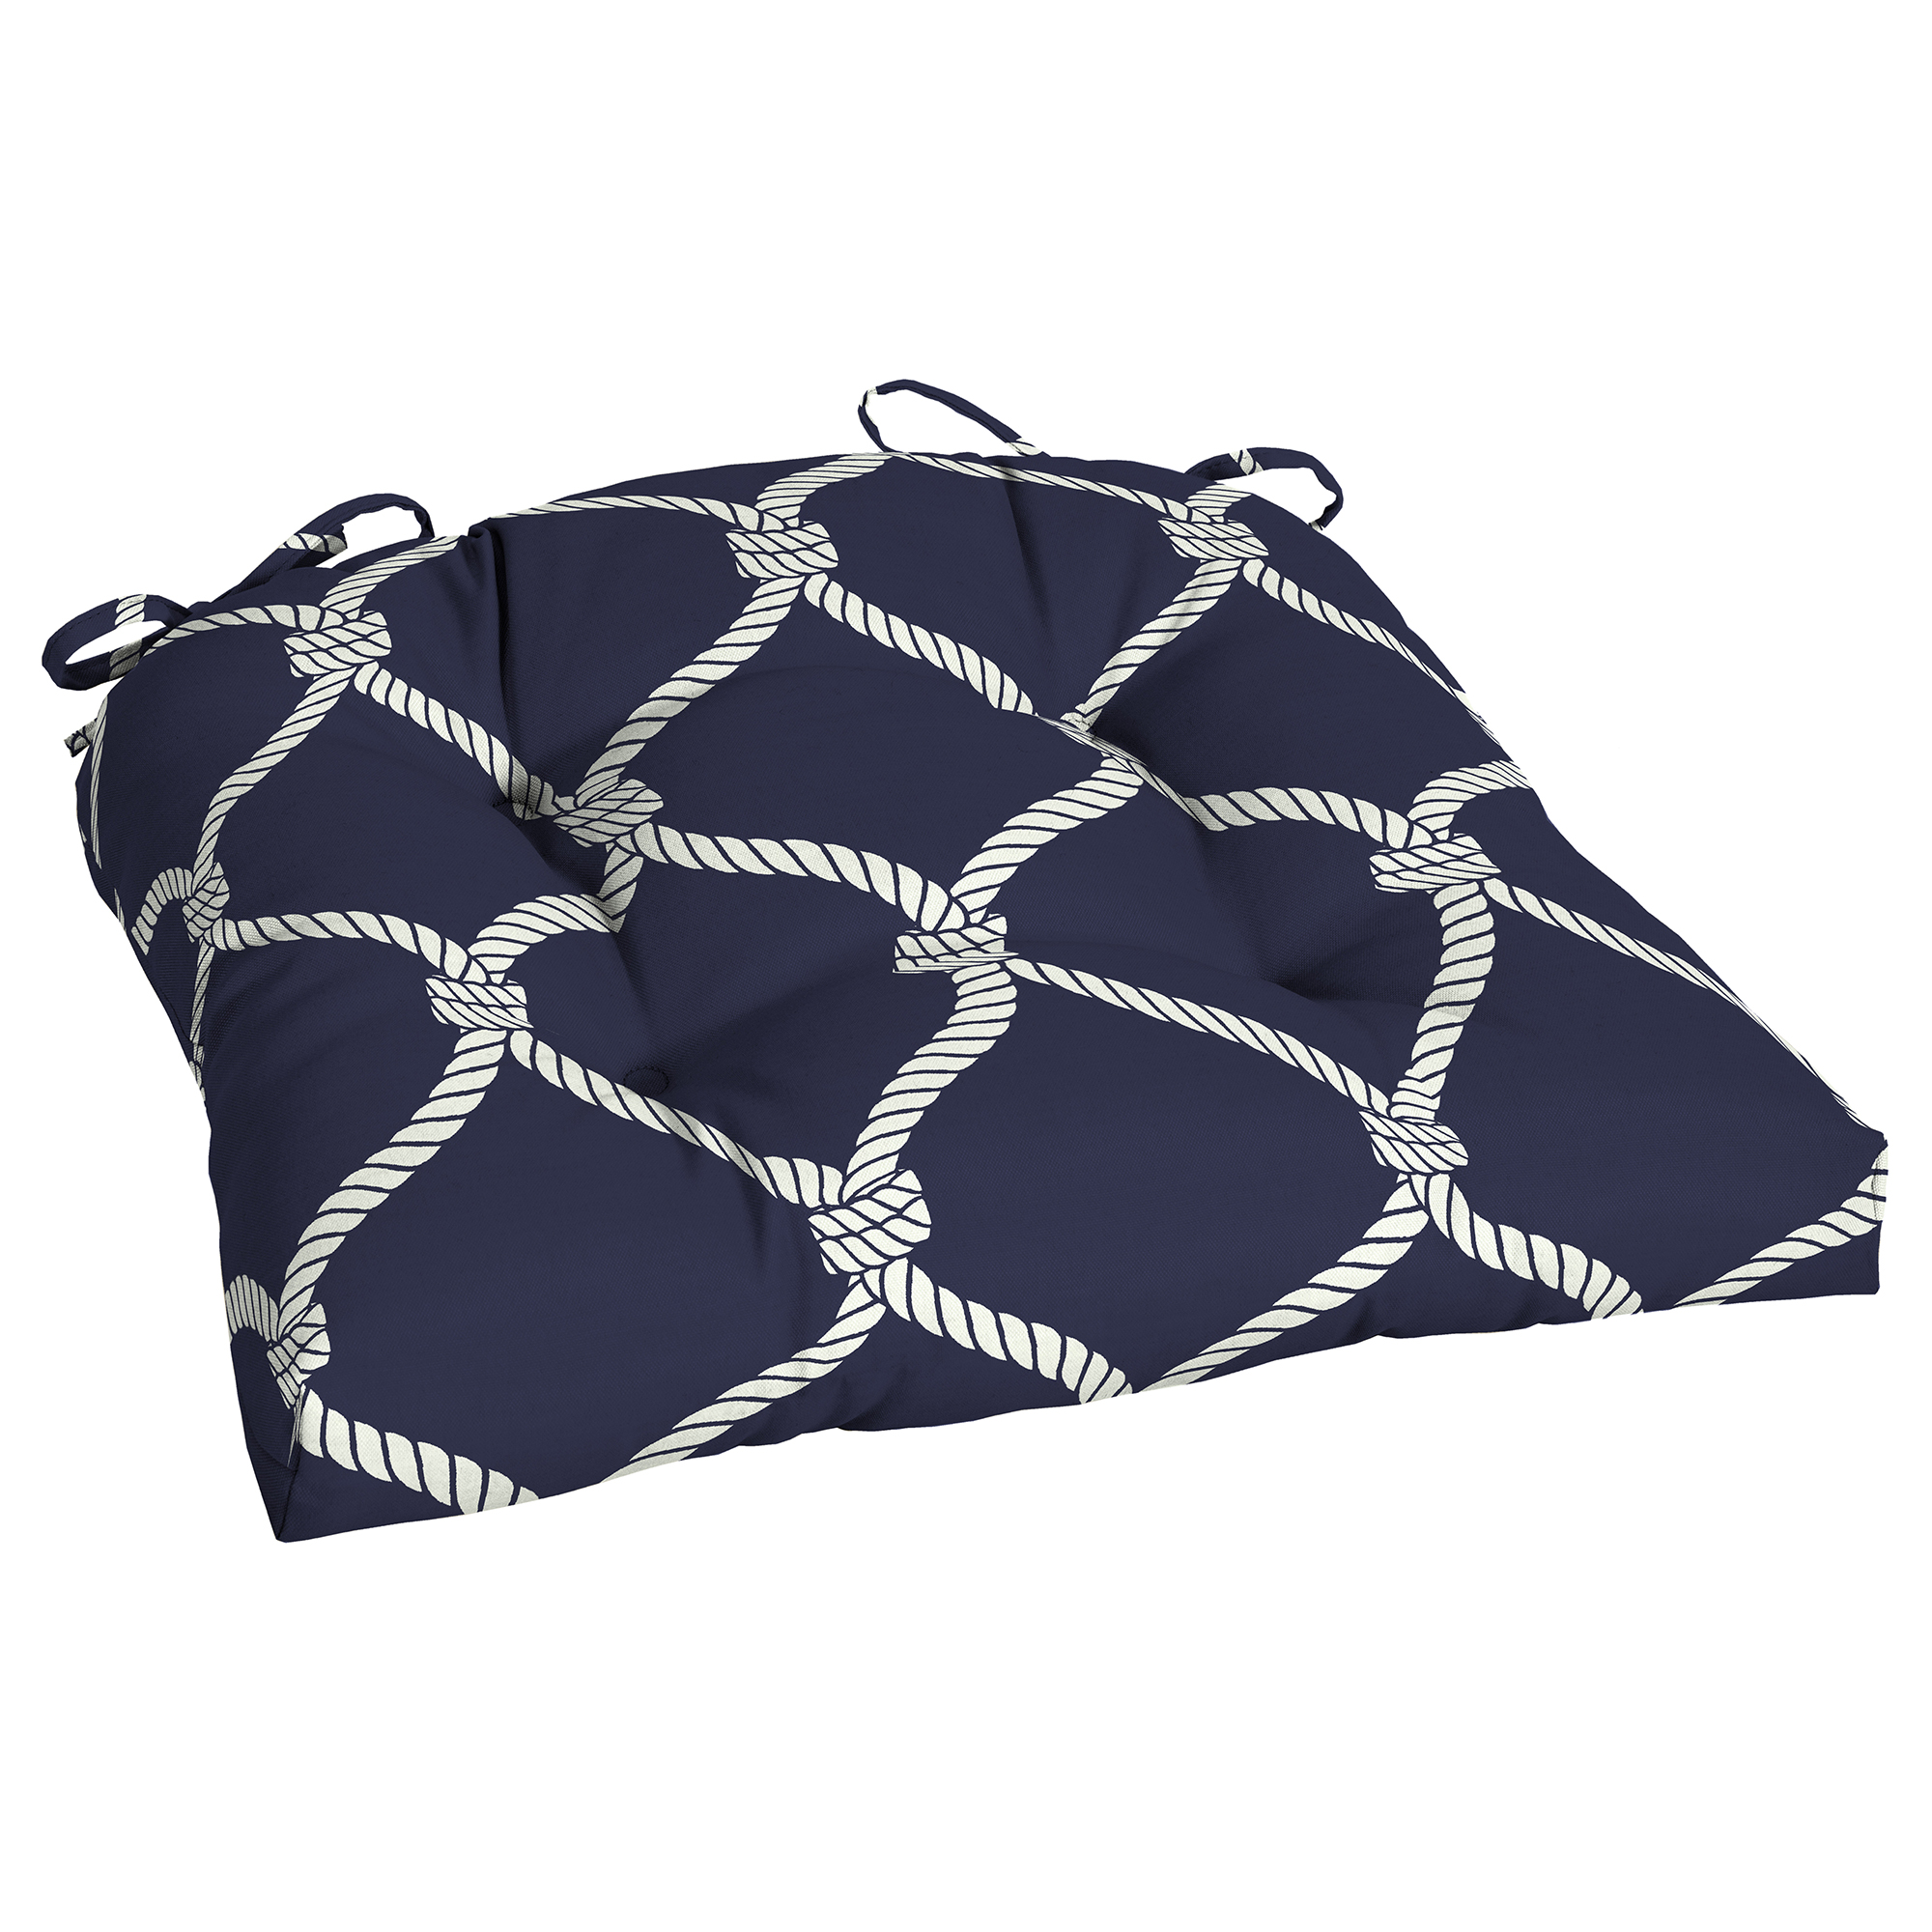 Better Homes and Gardens Nautical Rope Outdoor Wicker Seat Cushion